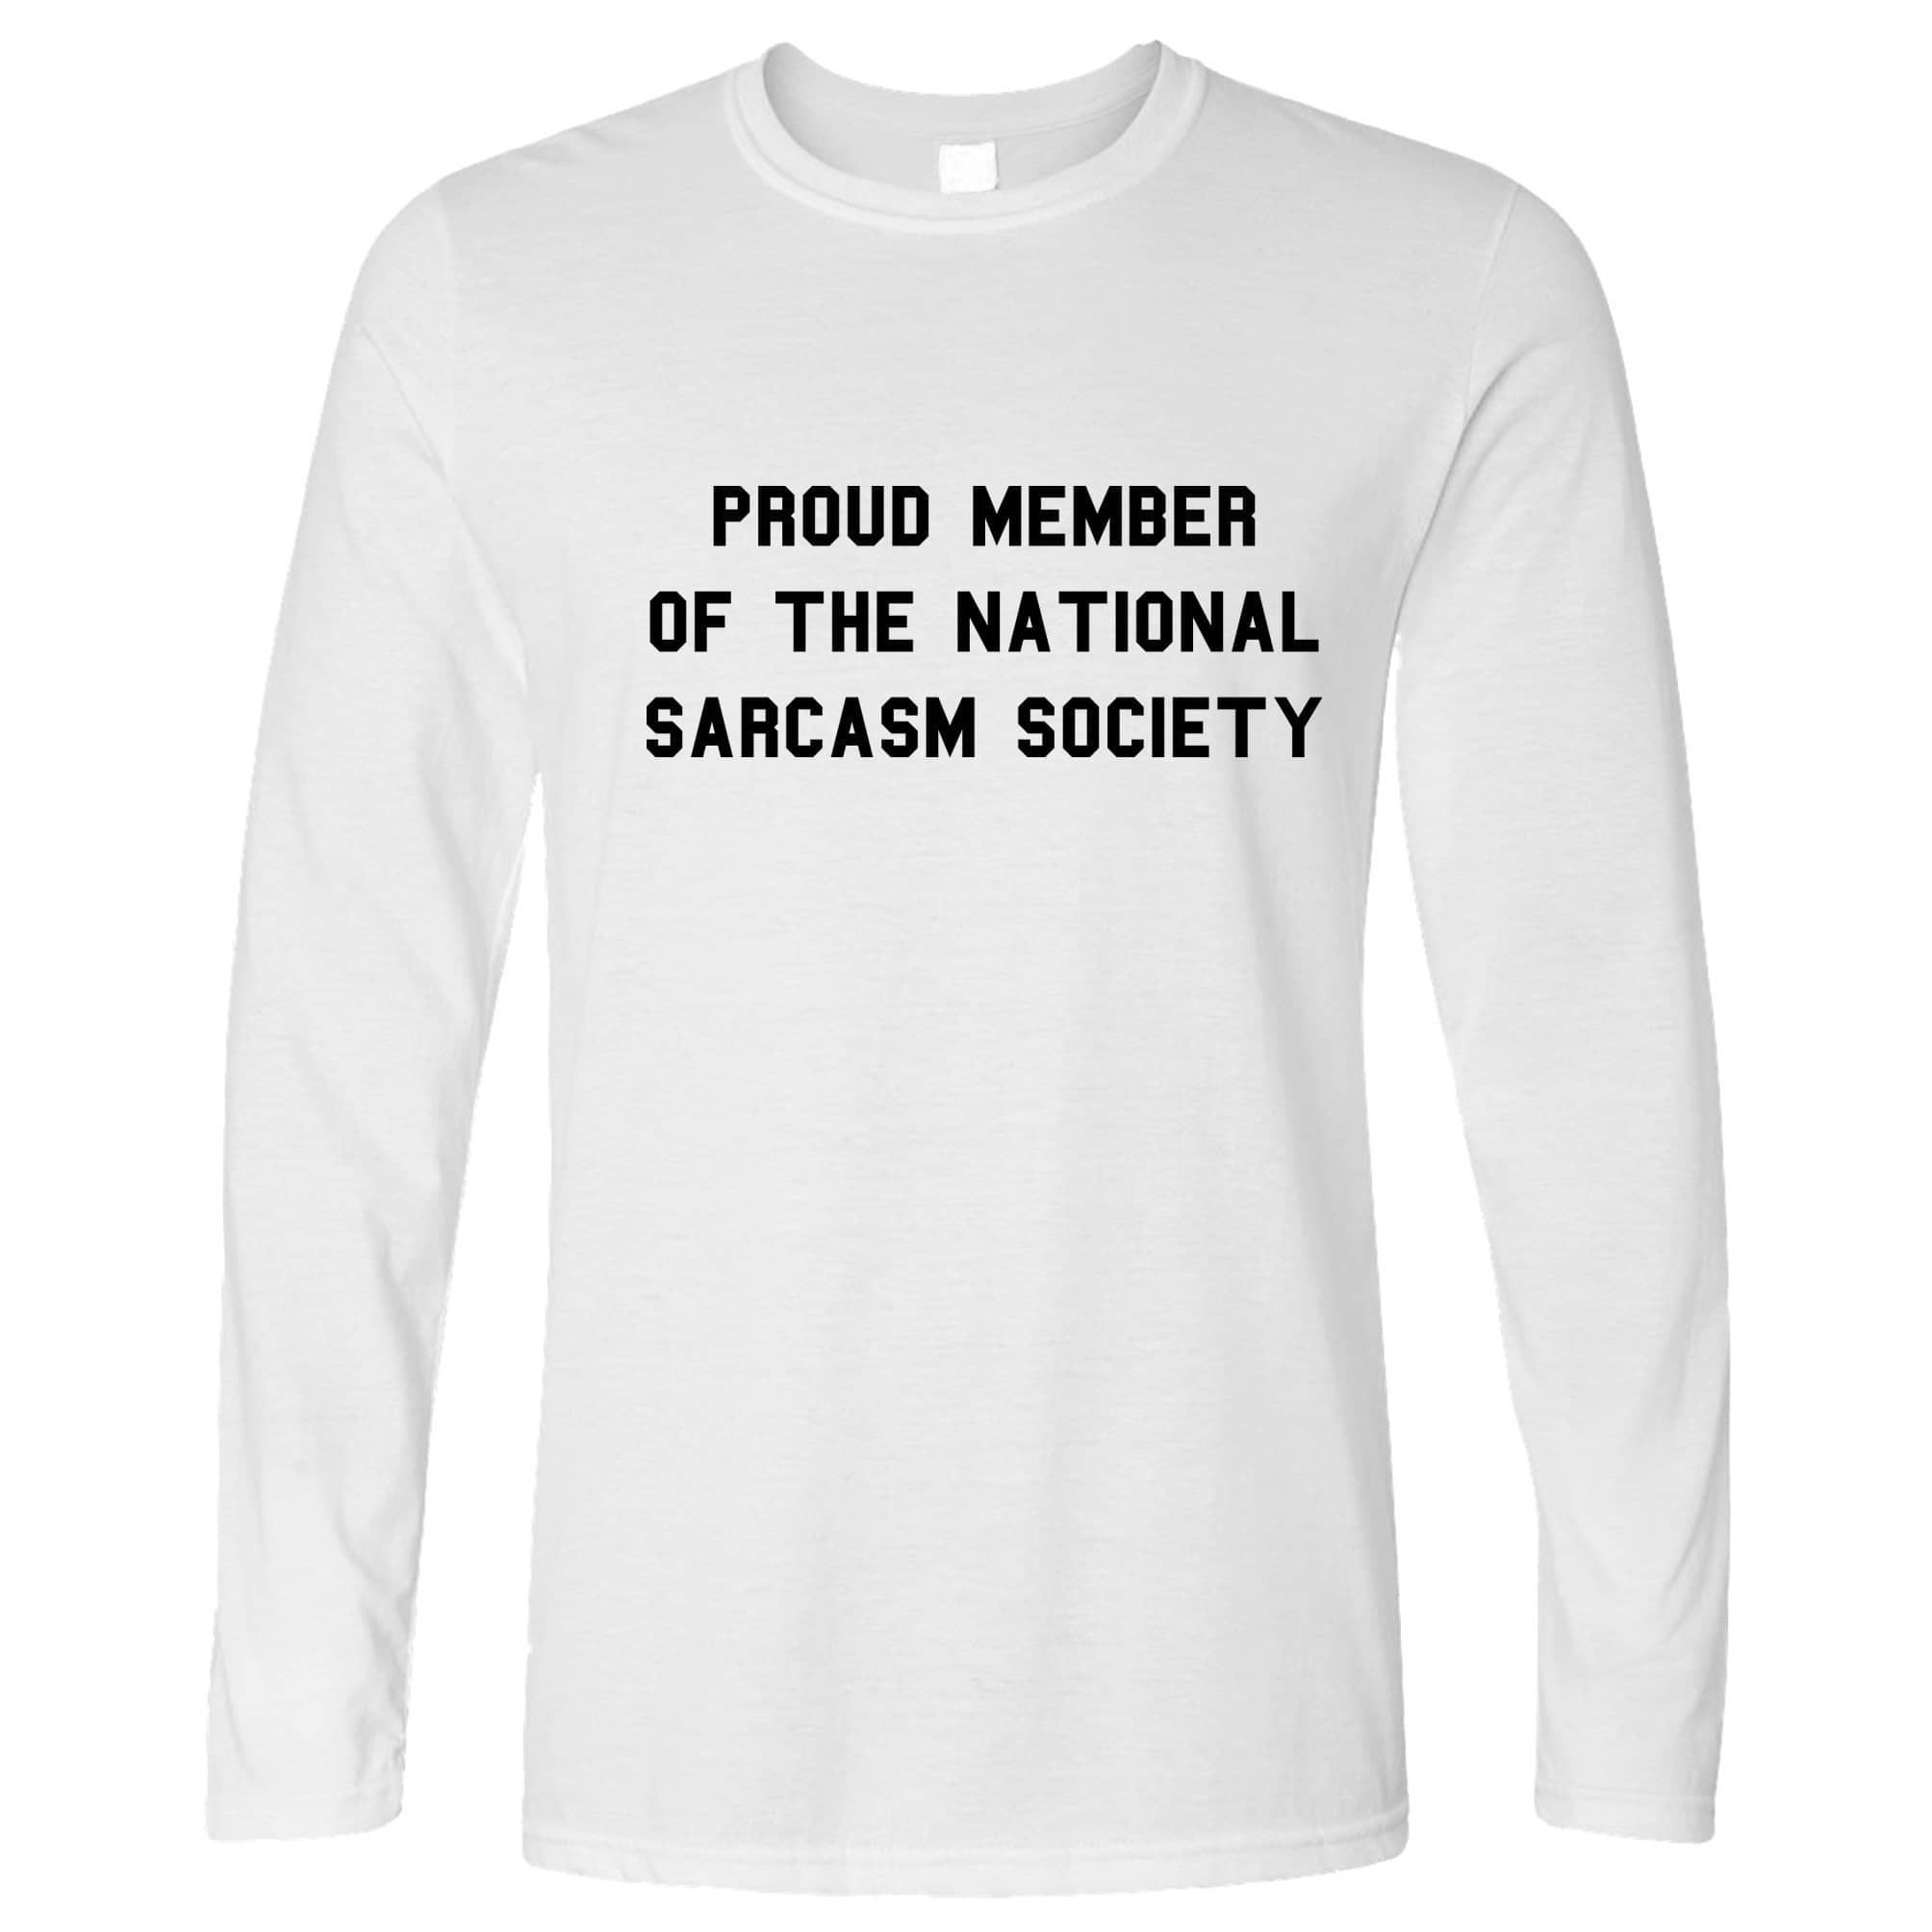 Novelty Long Sleeve Proud Member Of The Sarcasm Society T-Shirt